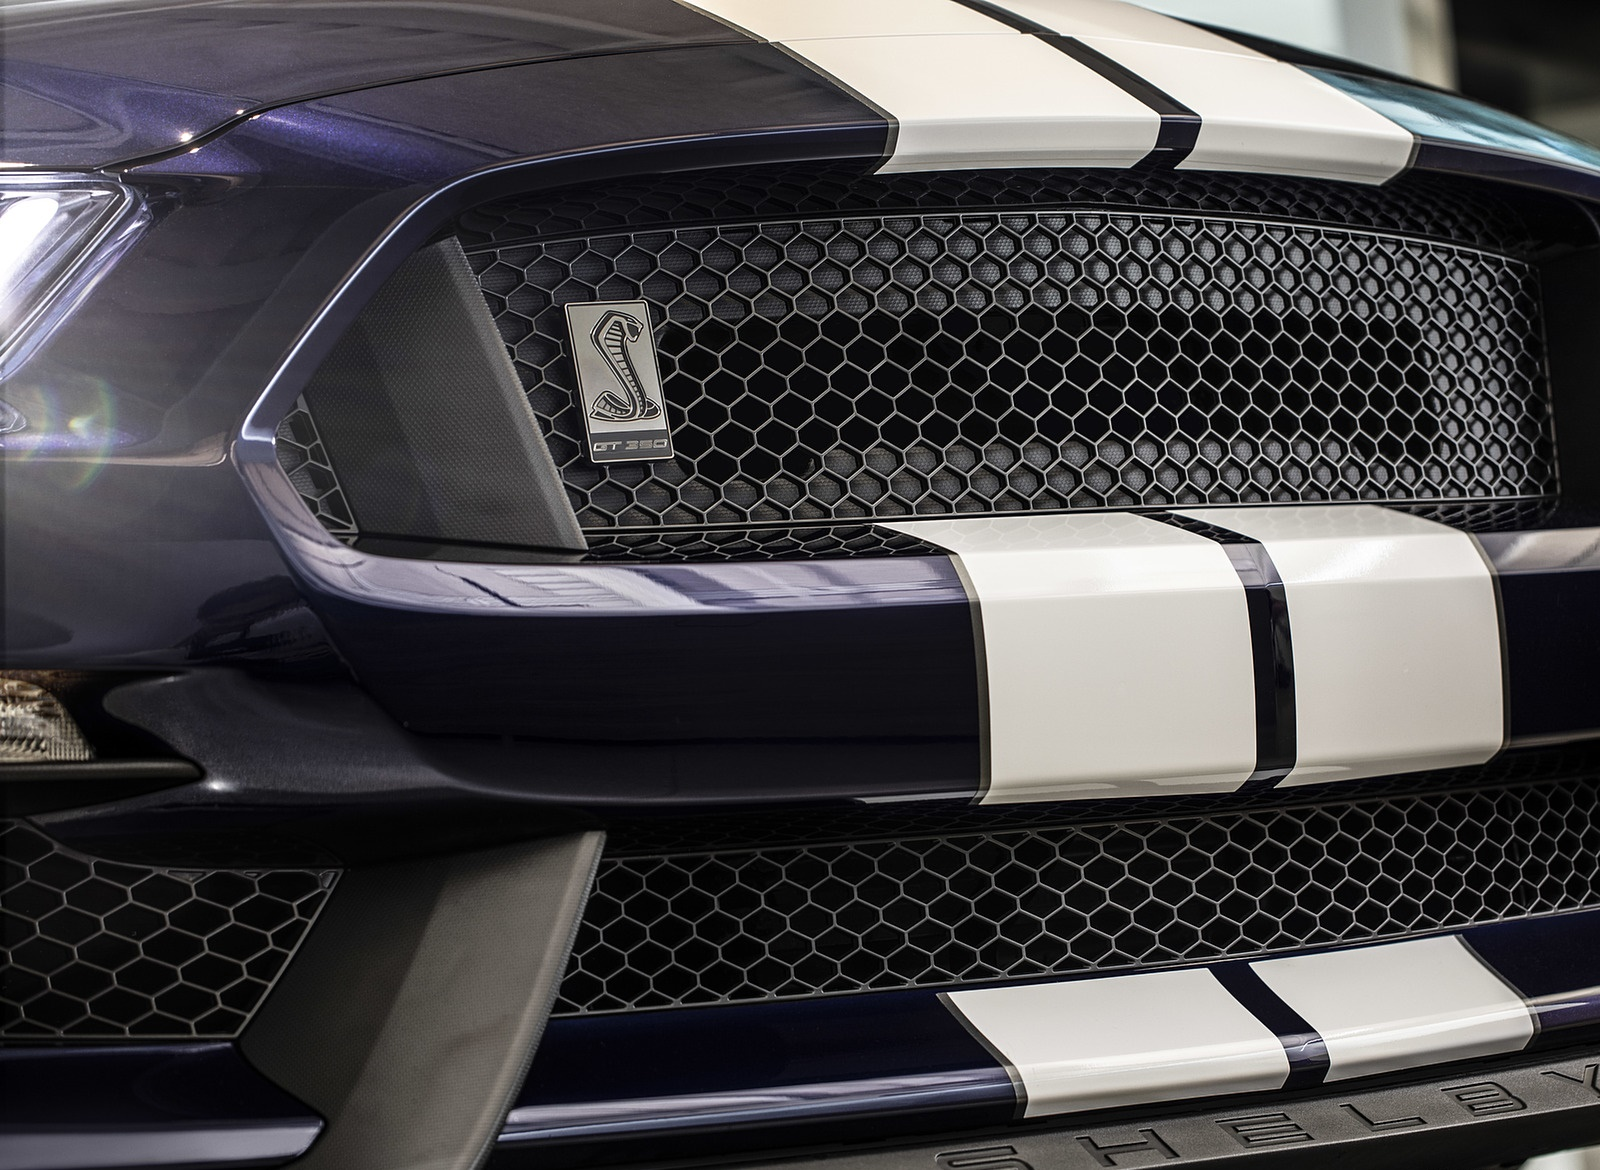 2019 Ford Mustang Shelby GT350 Grill Wallpapers (8)